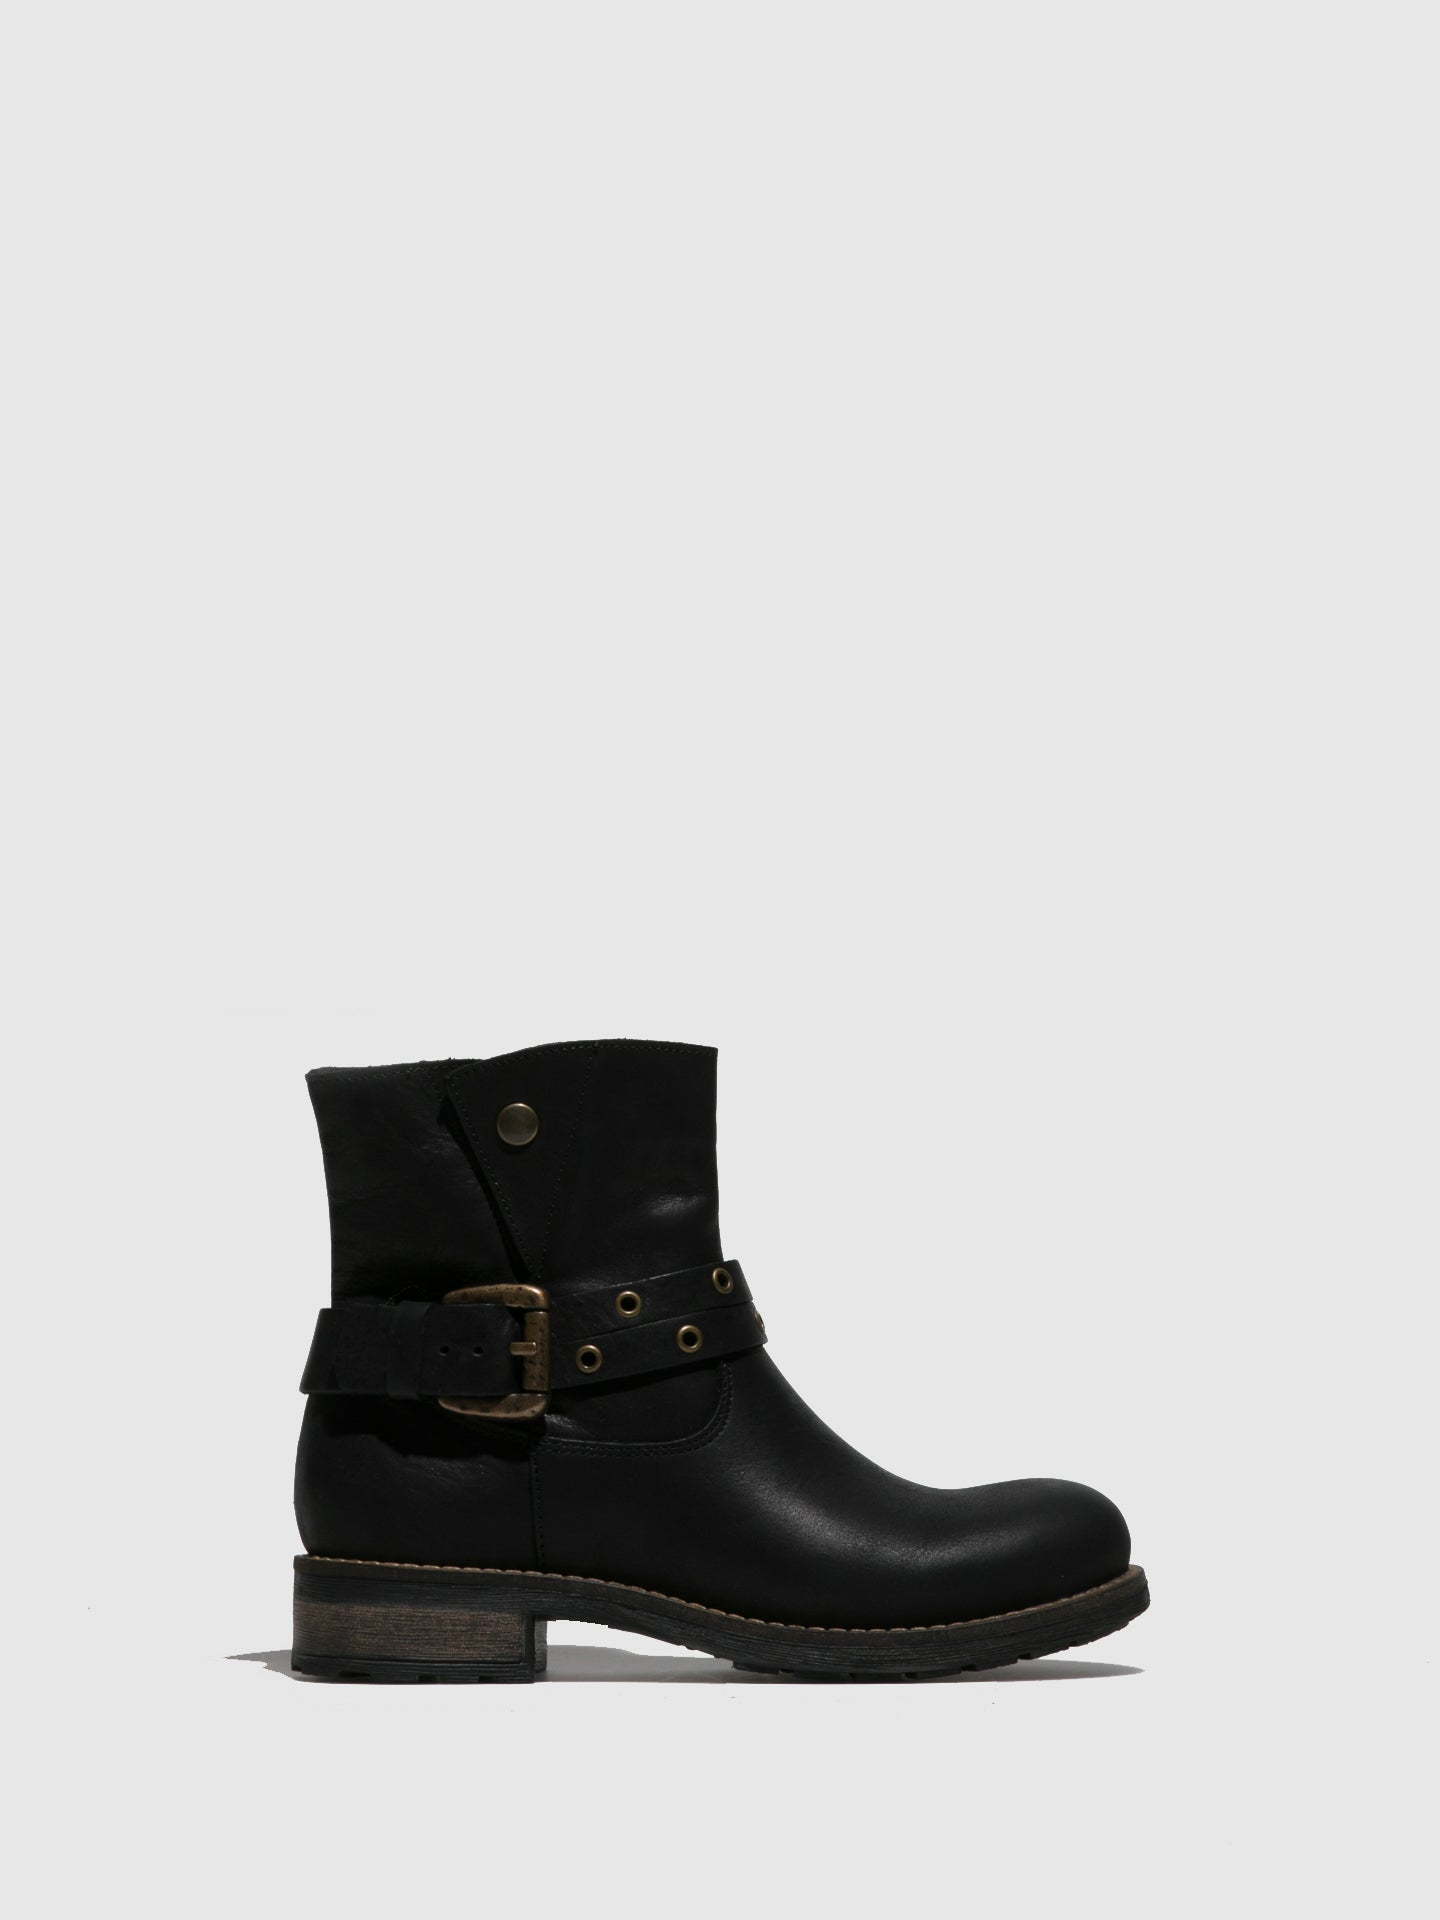 Fungi Black Buckle Ankle Boots